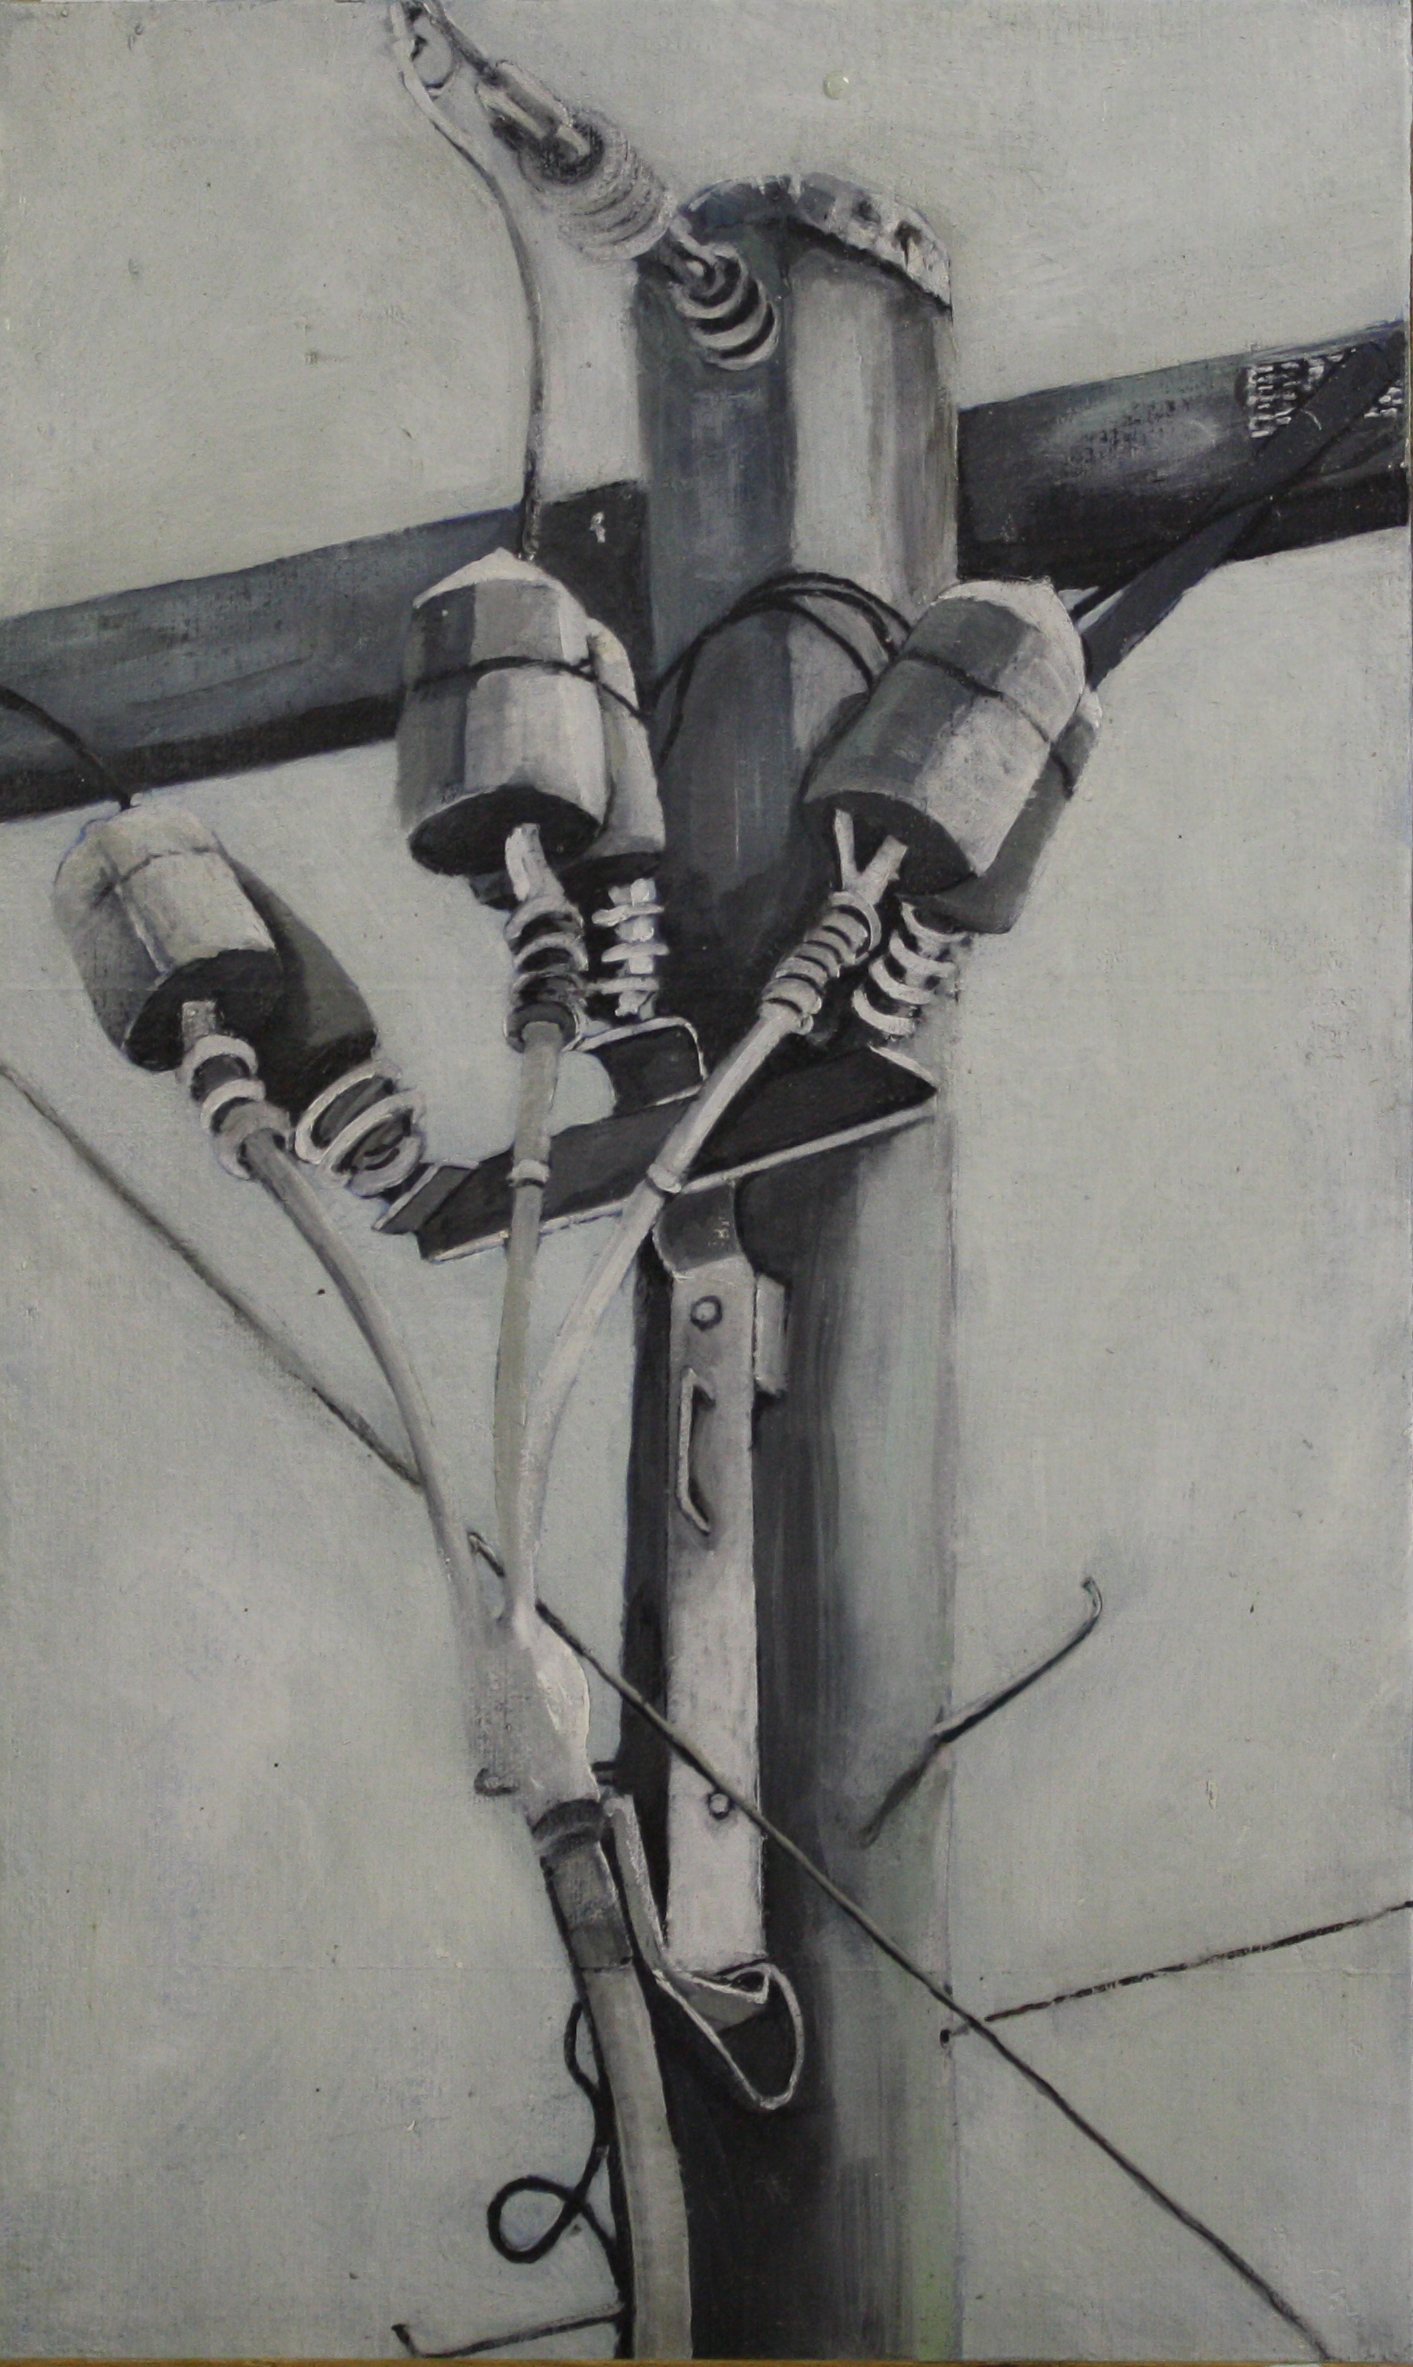 Components:  24712   2011, oil on canvas on hardboard  50 x 76 cm